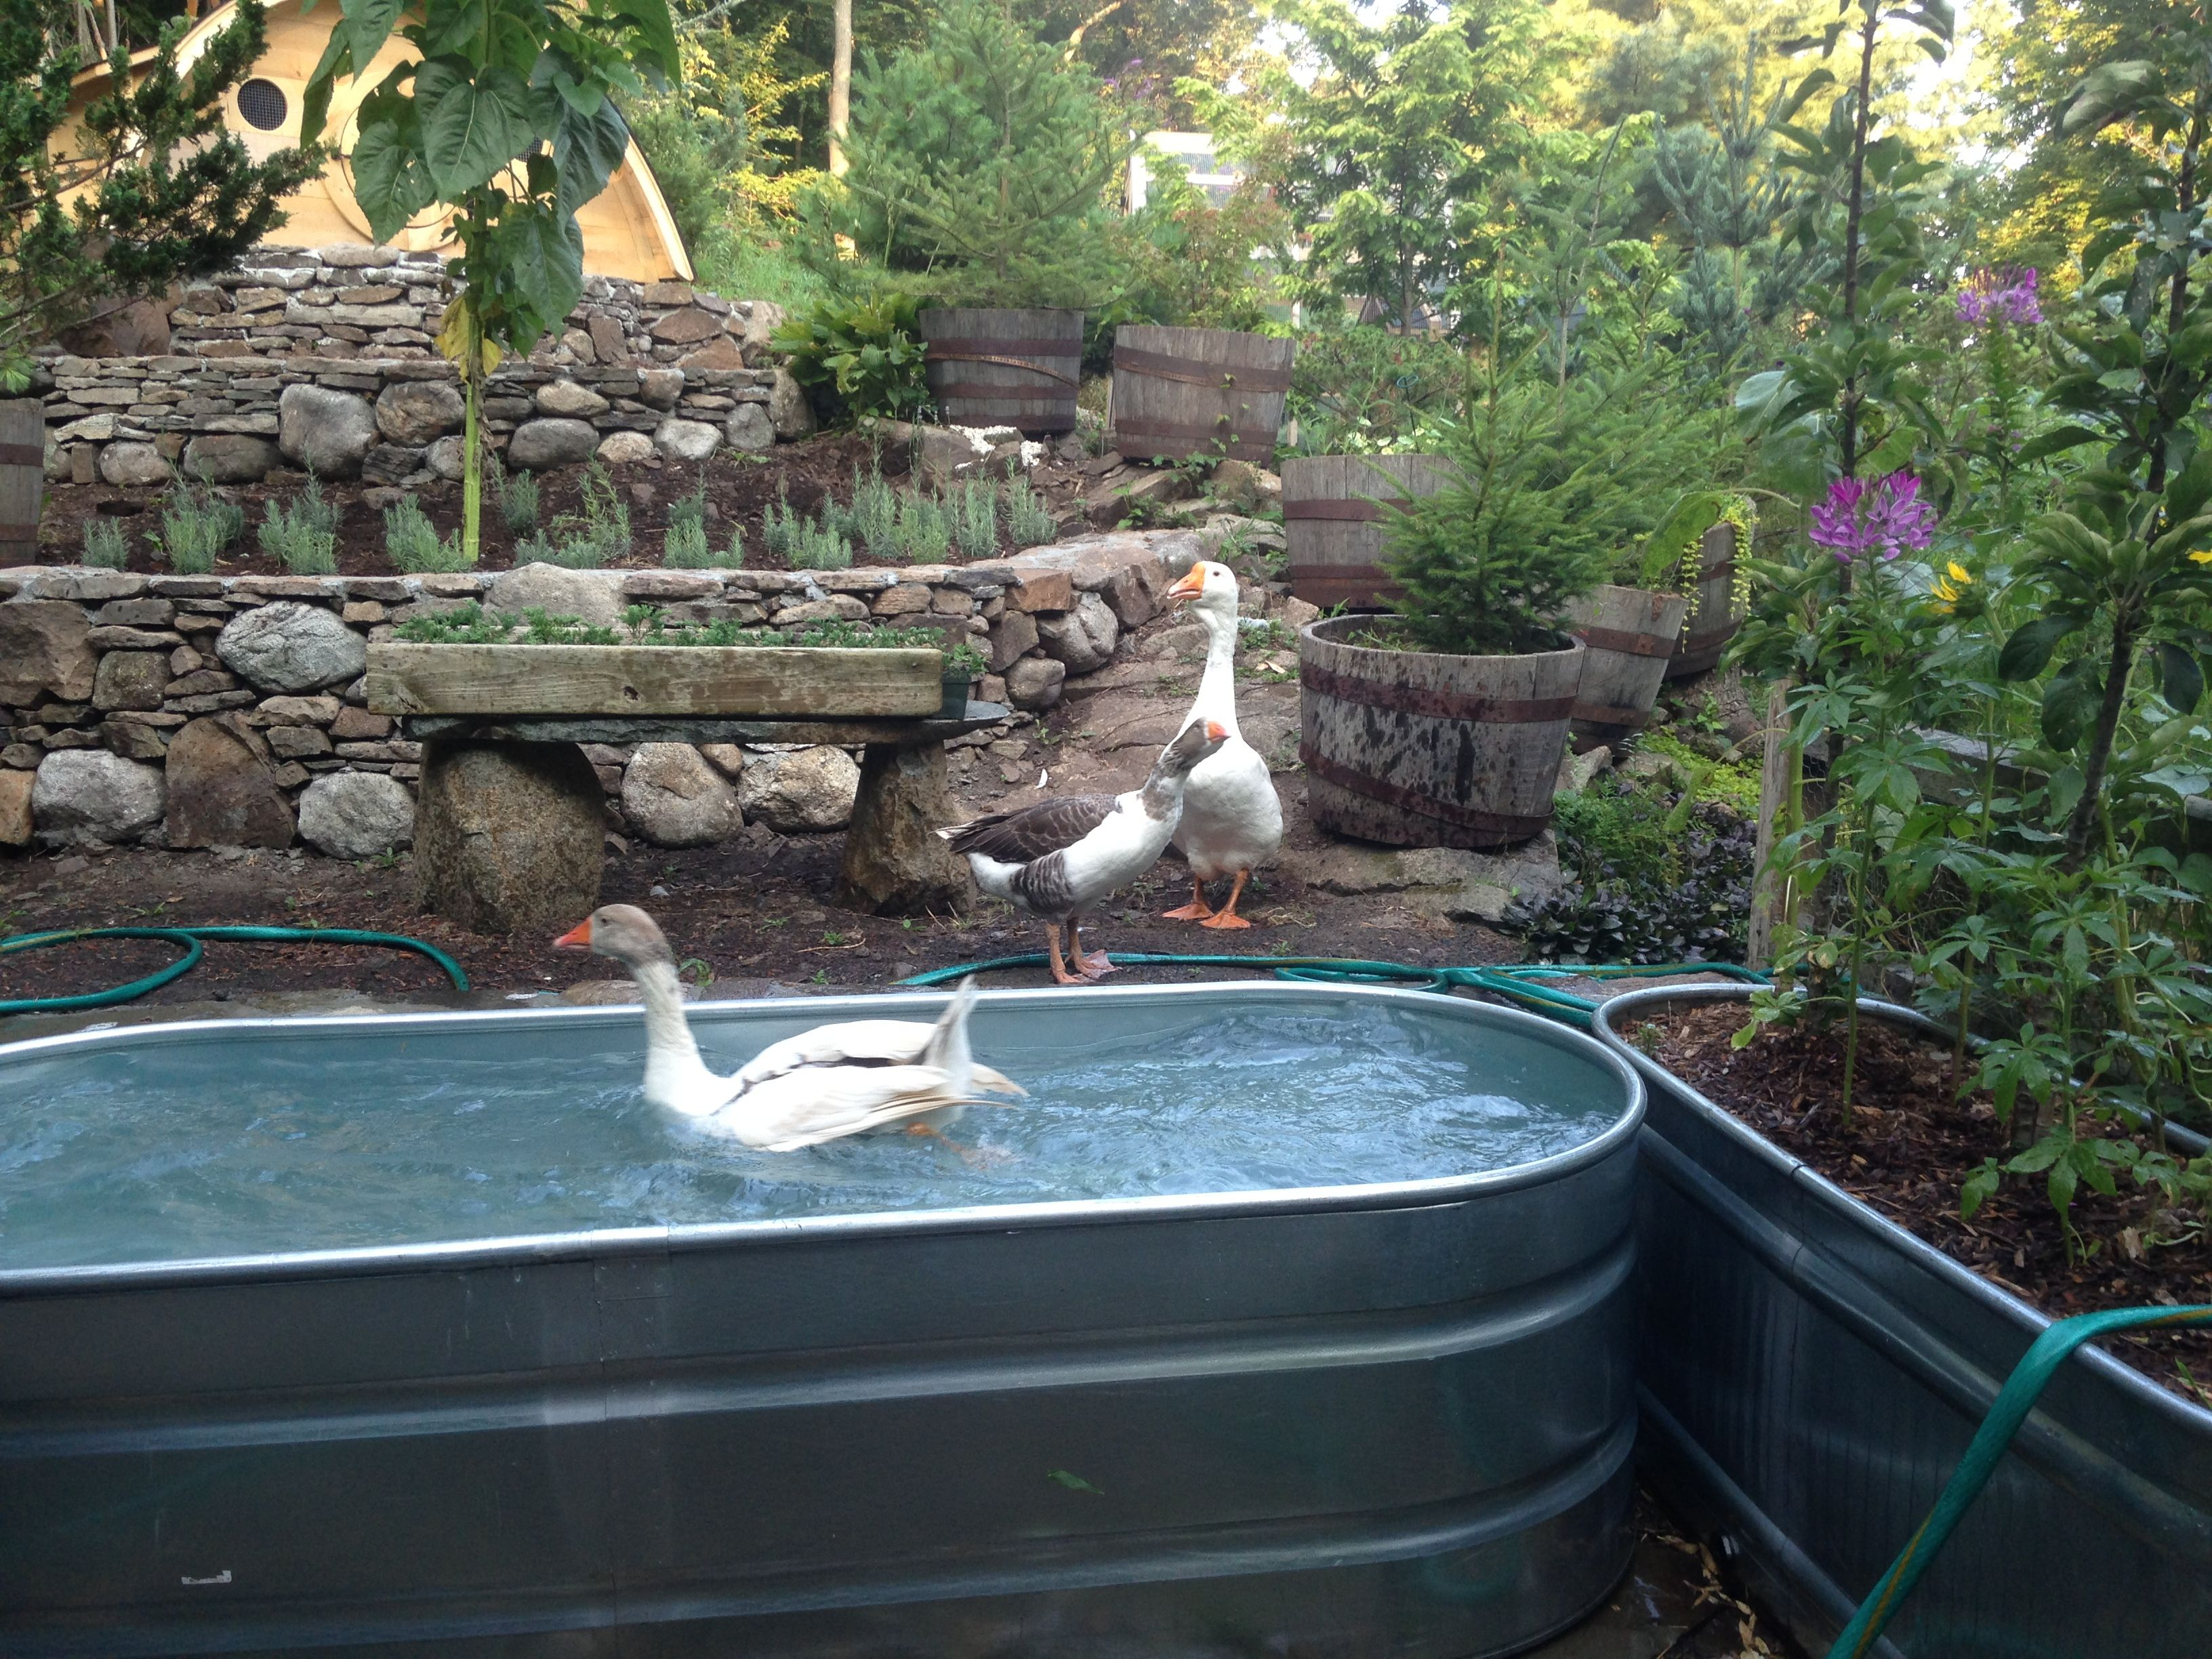 Stock tank goose pond stock tank goose pond pinterest for Aquaponics pond design